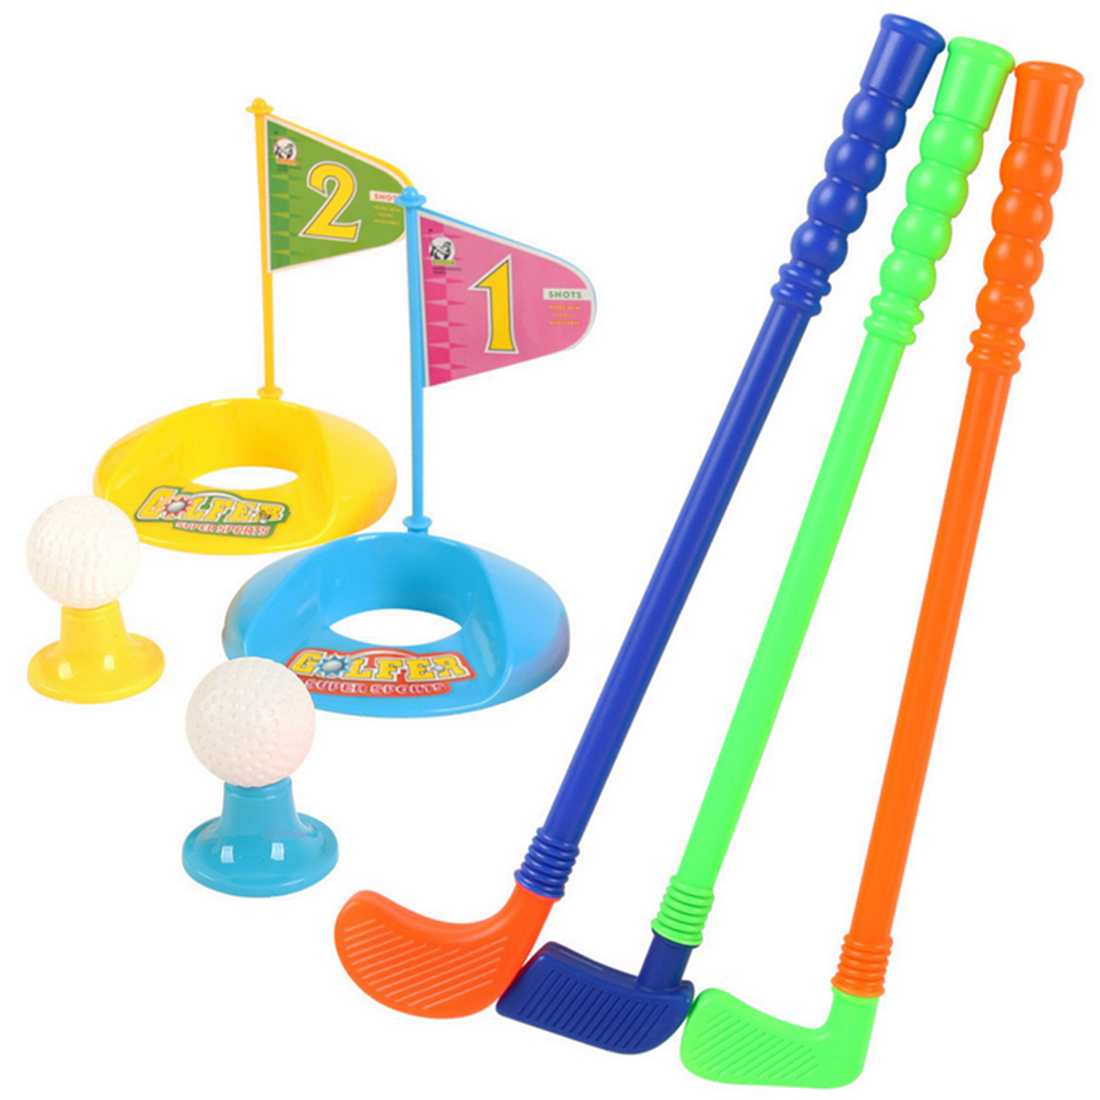 Set of Plastic 3 Golf Putter Club 2 Balls 2 Putting Cup 2 Flags 2 Tees Kids Toy Color... by